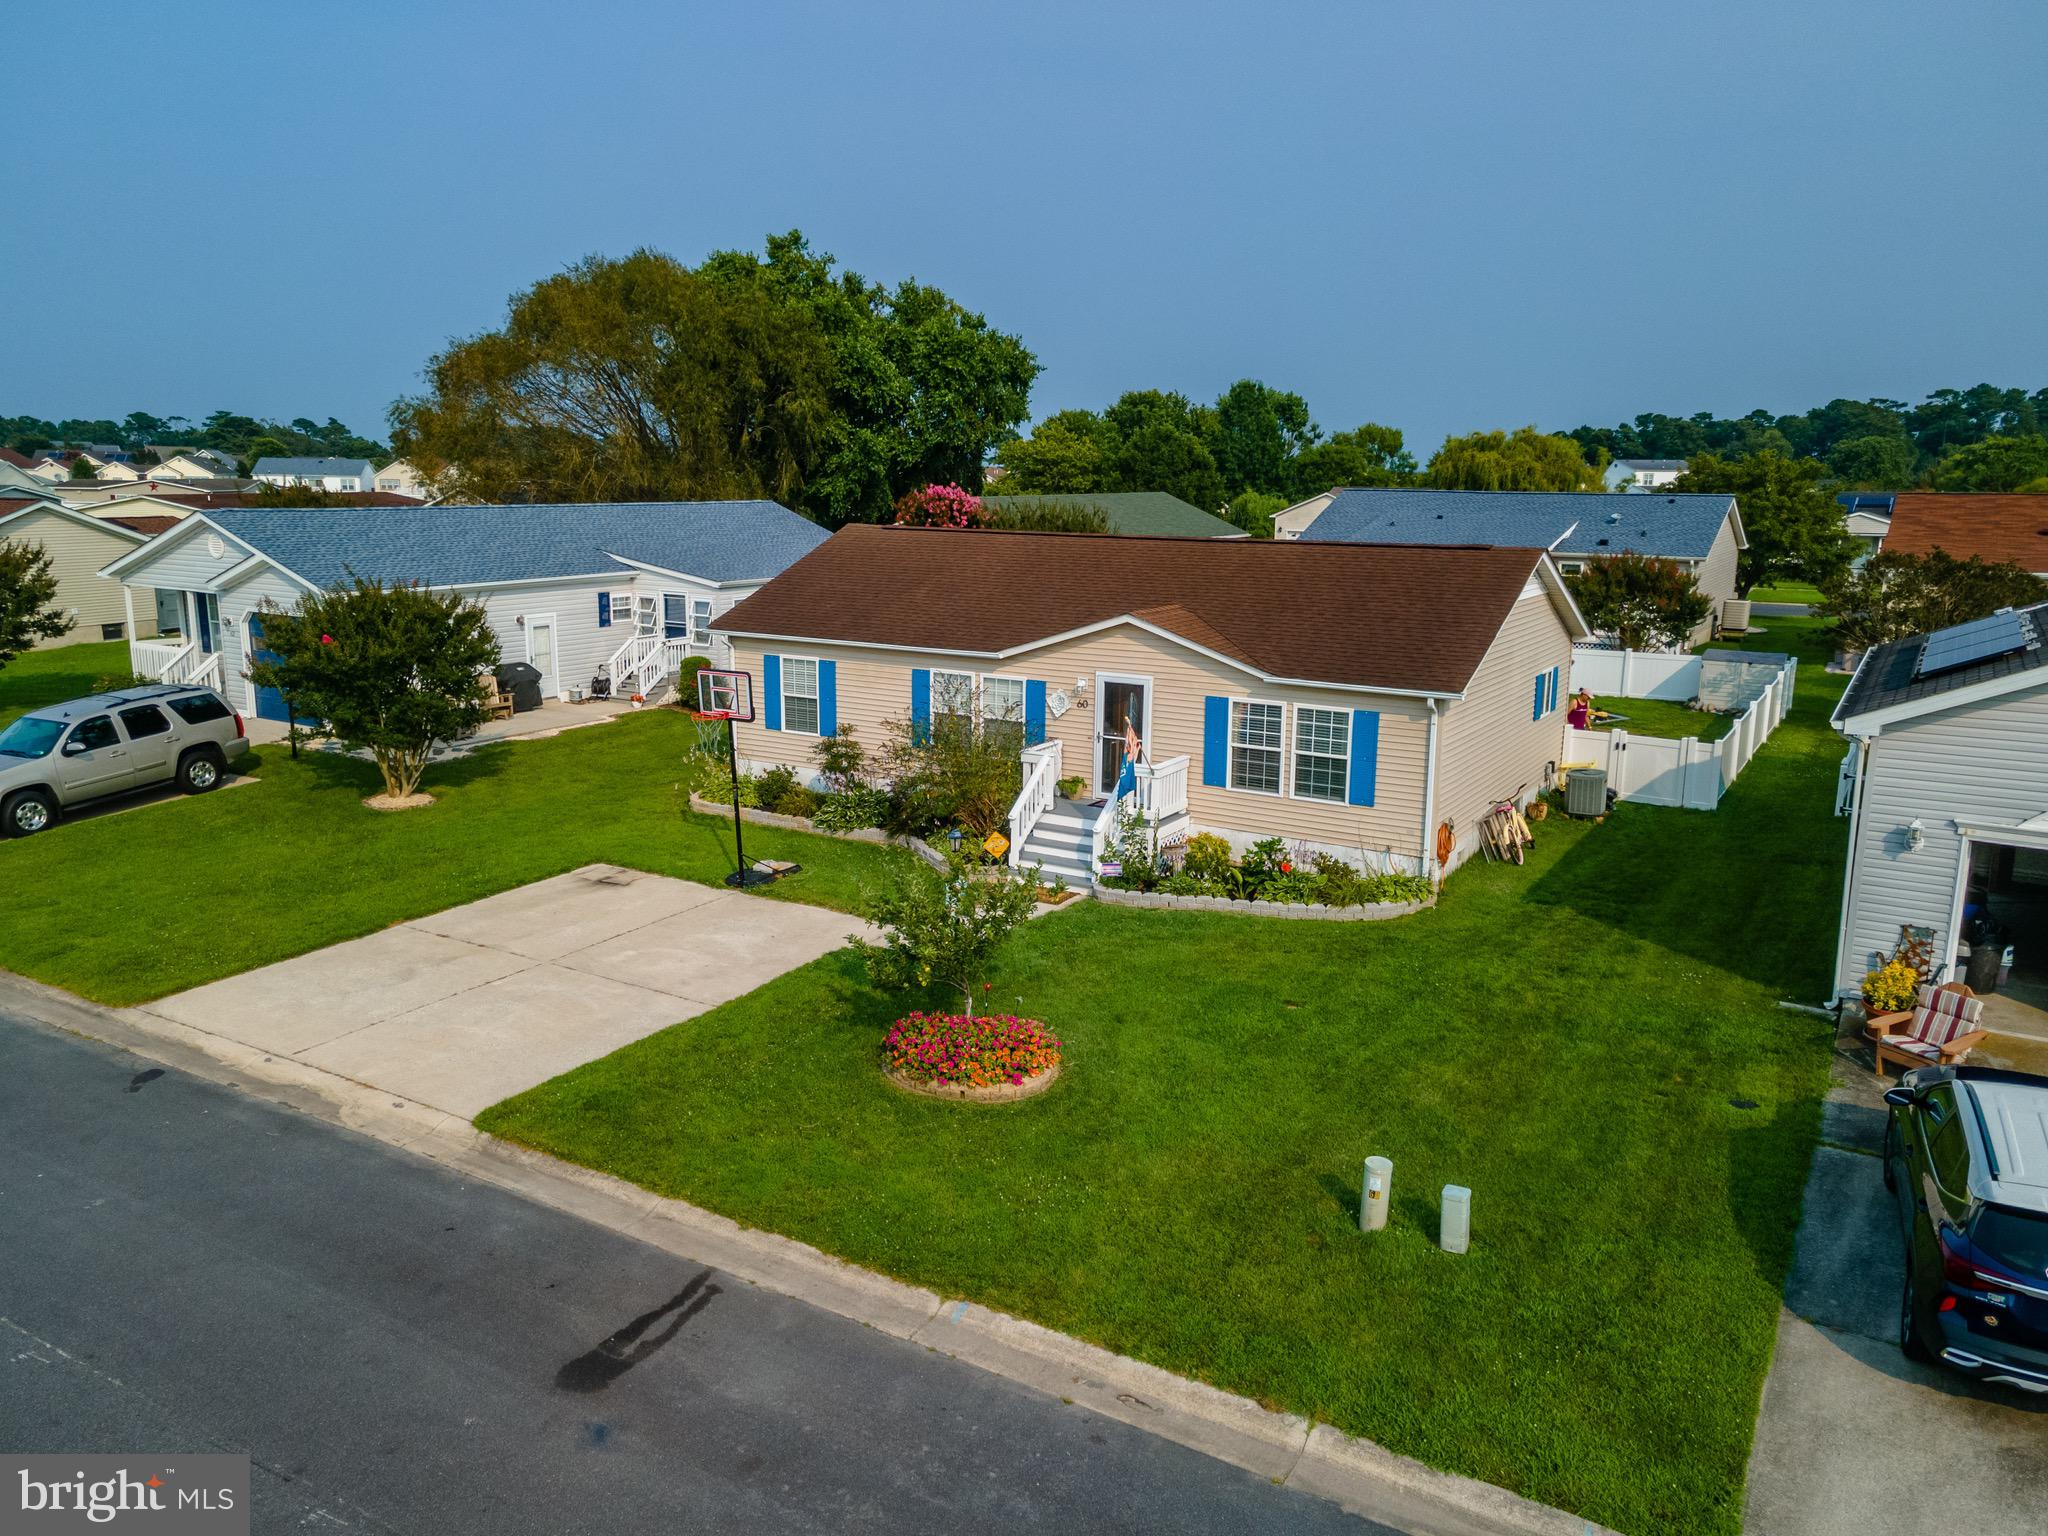 Updates Galore in this mystic harbor gem with new flooring, updated bathrooms and kitchen appliances